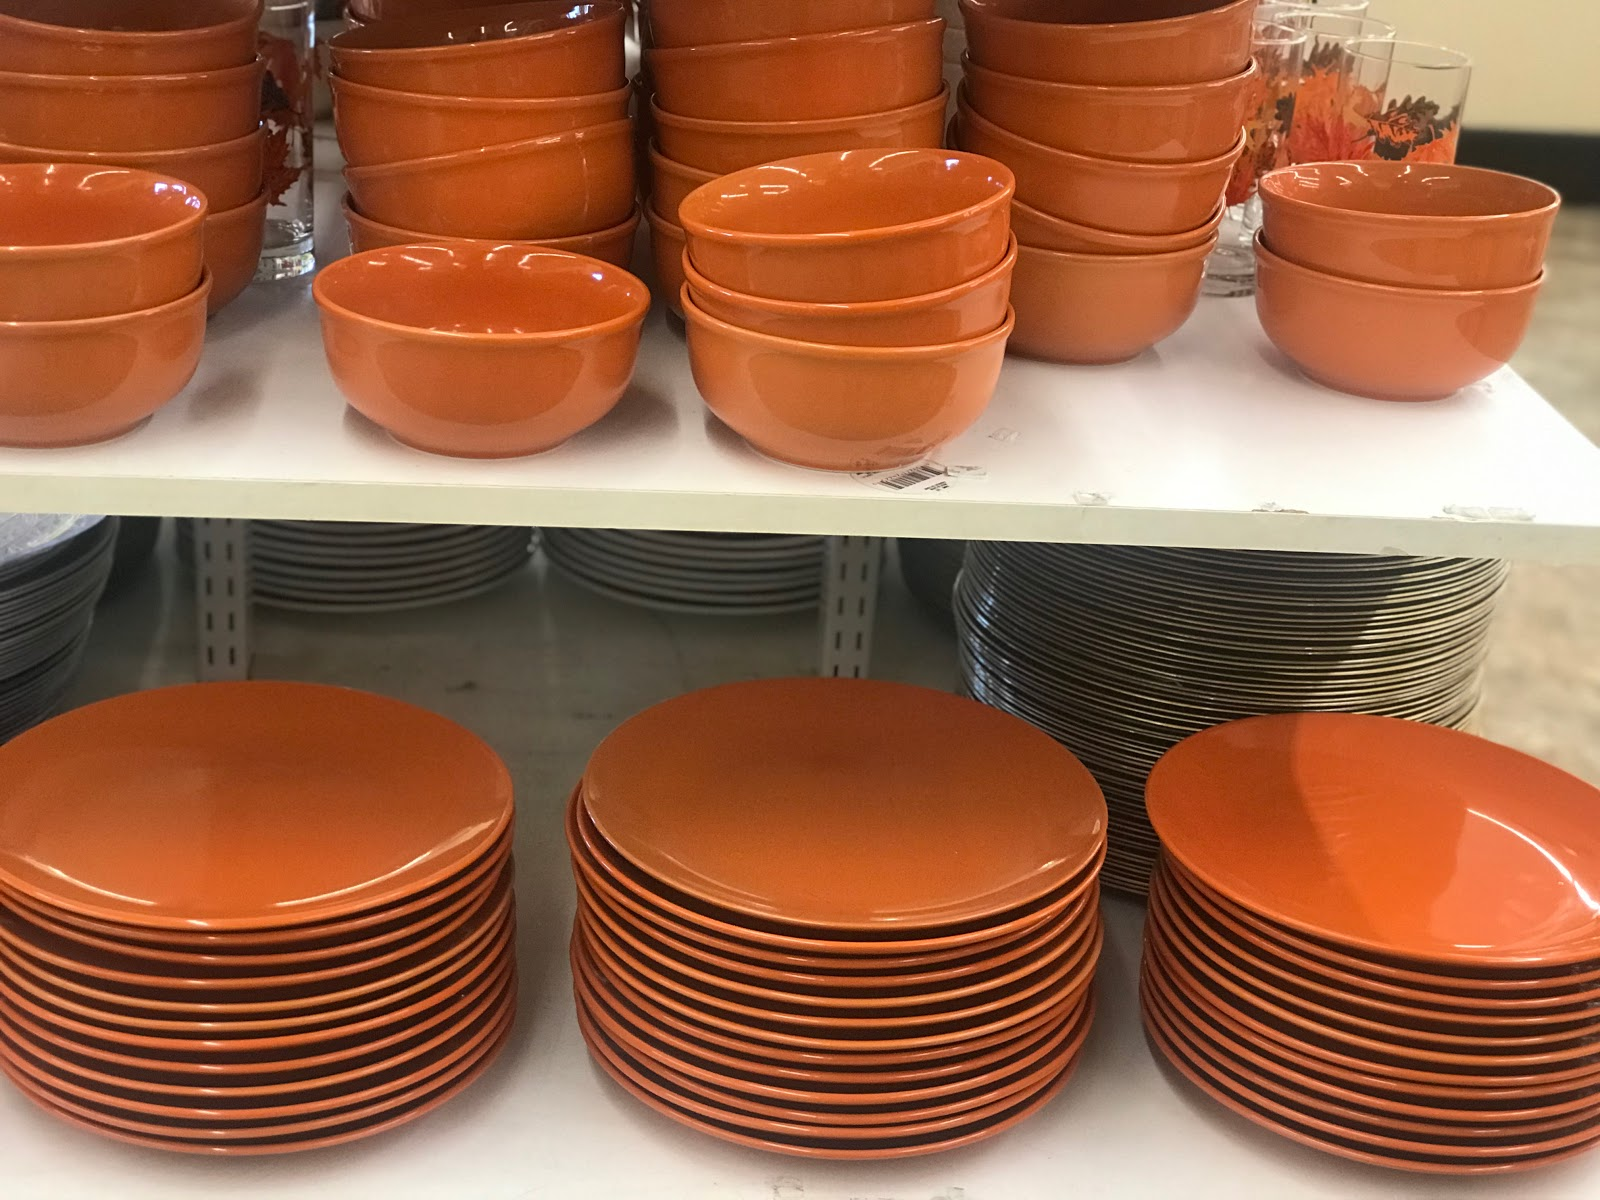 Image: orange plates Tangie bell saw at the dollar store. She possibly will be using for Fall decor. Seen first on Bits and Babbles Blog